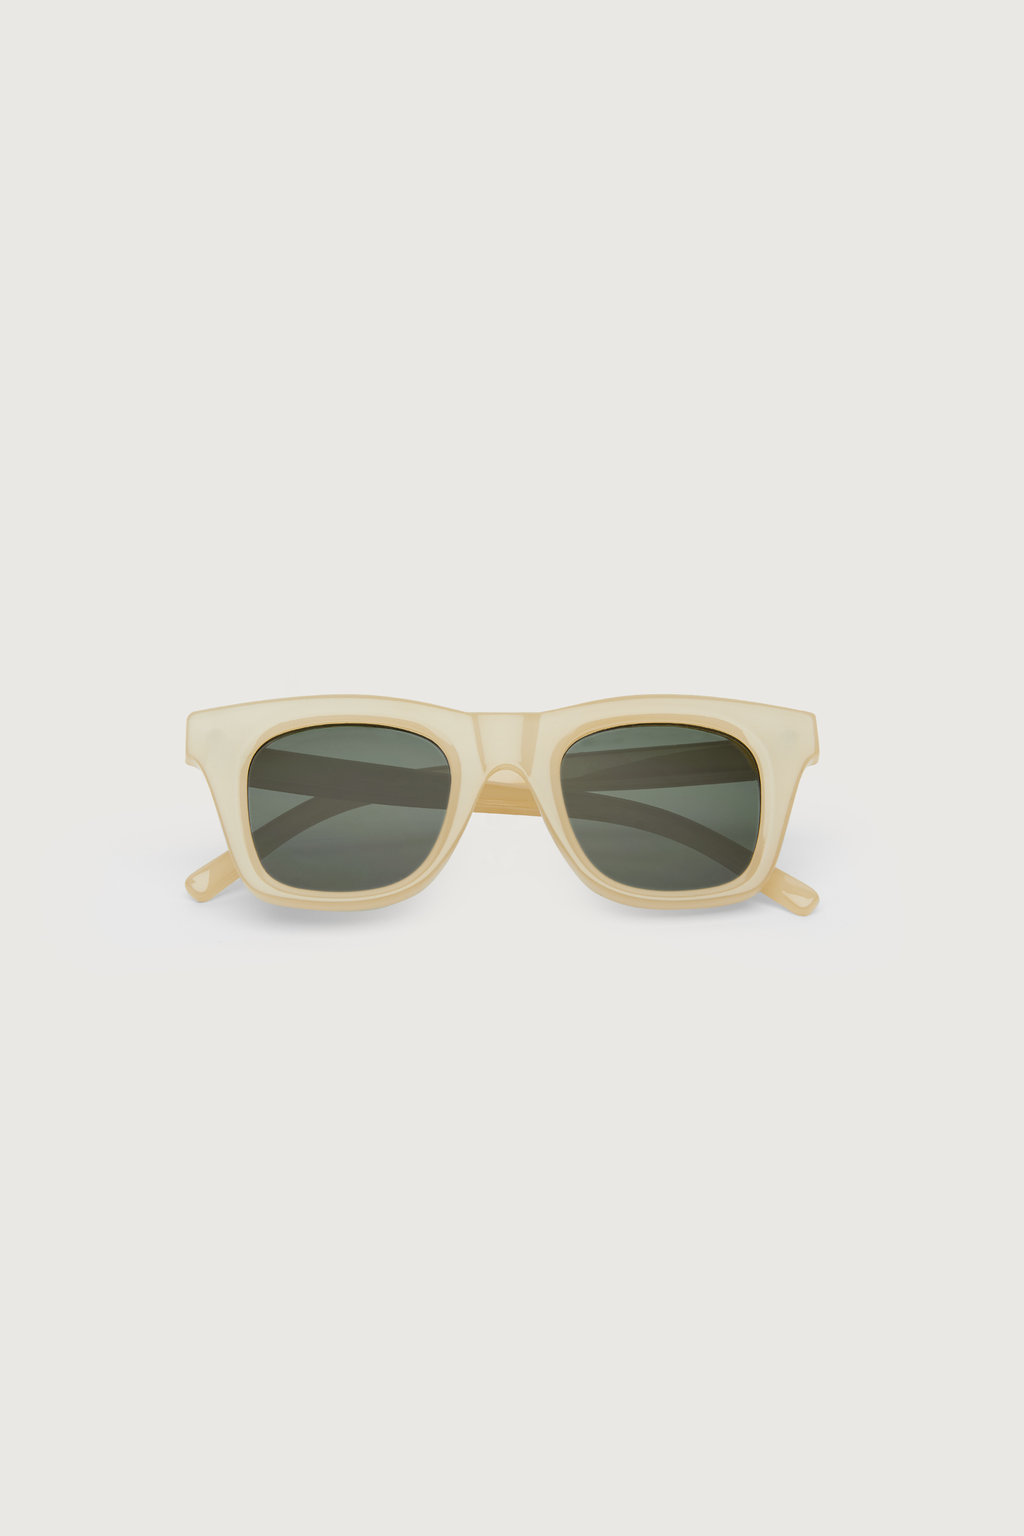 Sunglass 3371 Cream 4